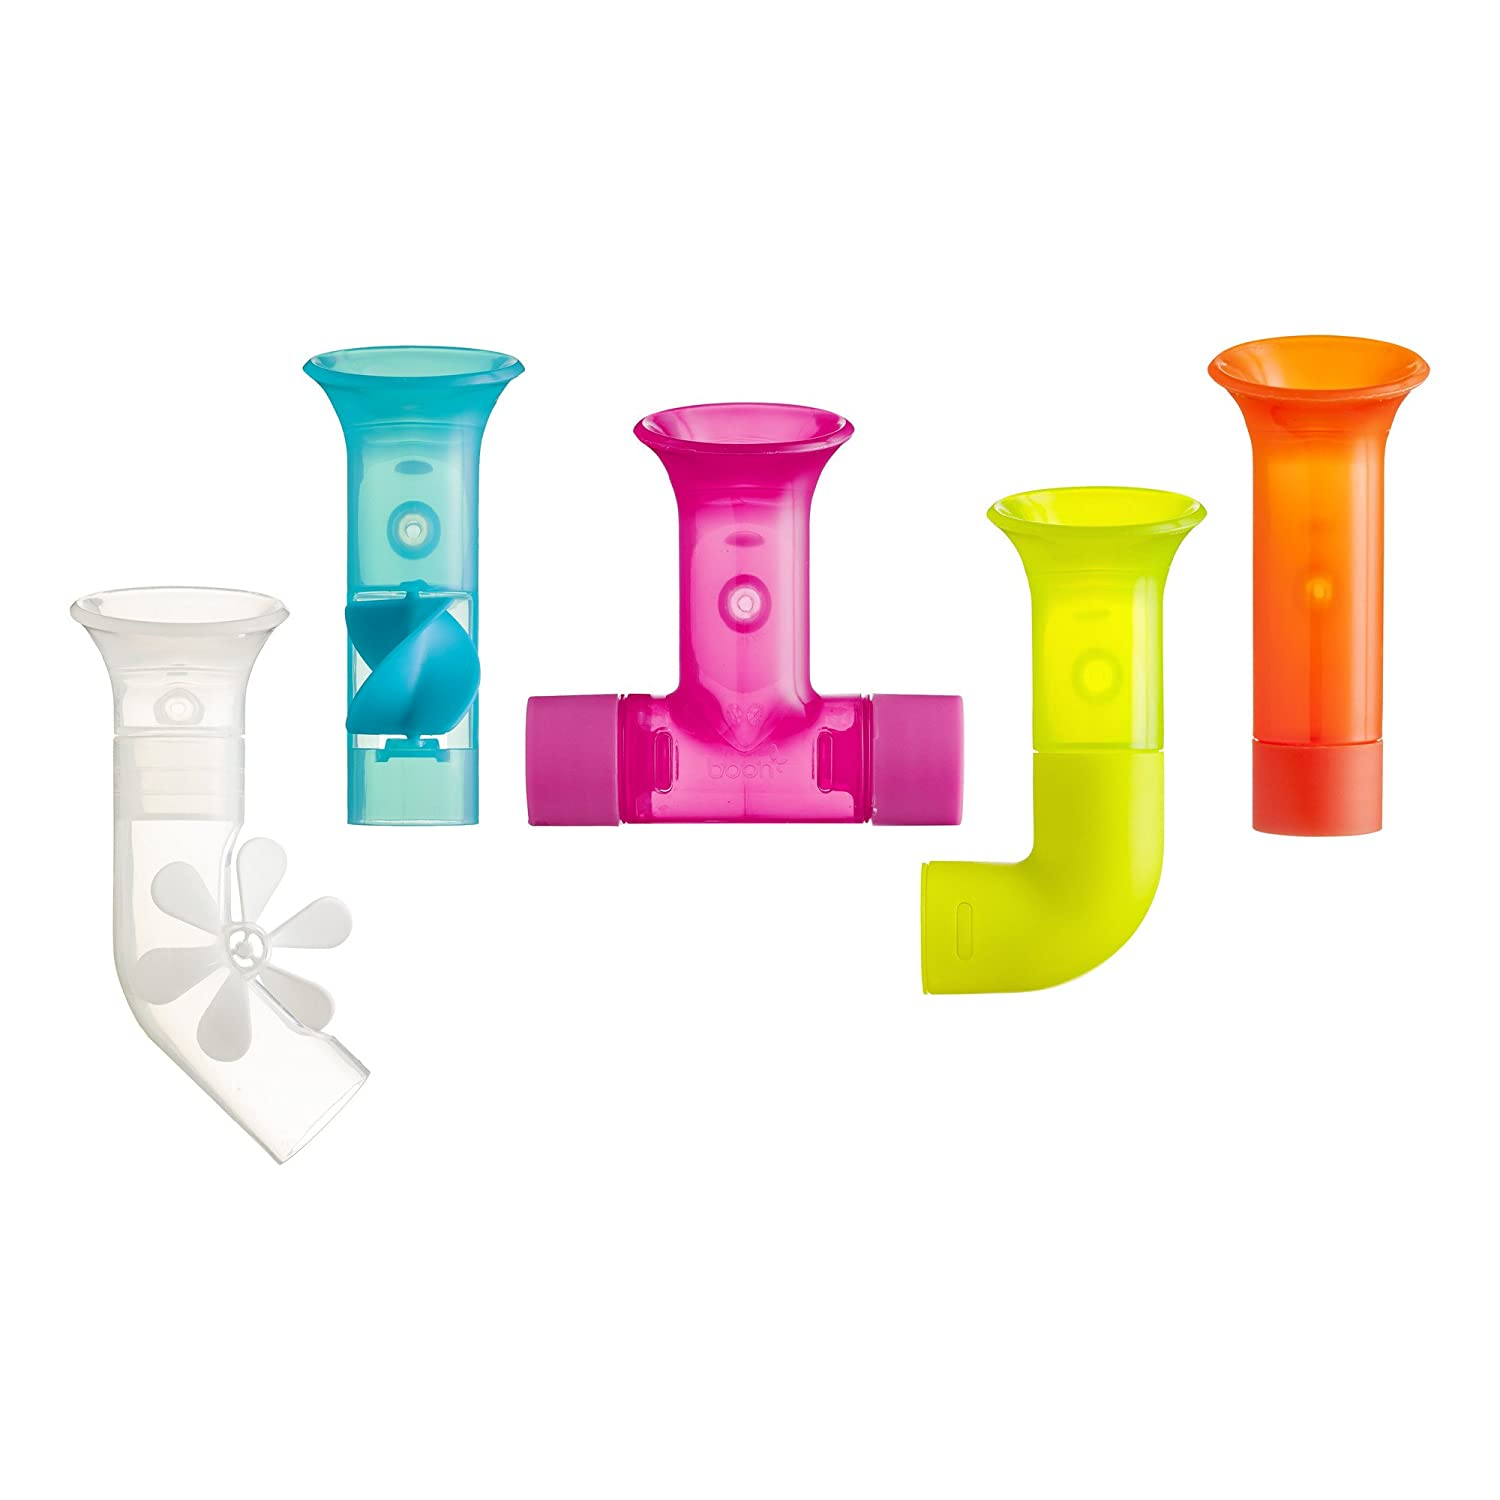 Boon Multicoloured Pipes Bath Toy B11088